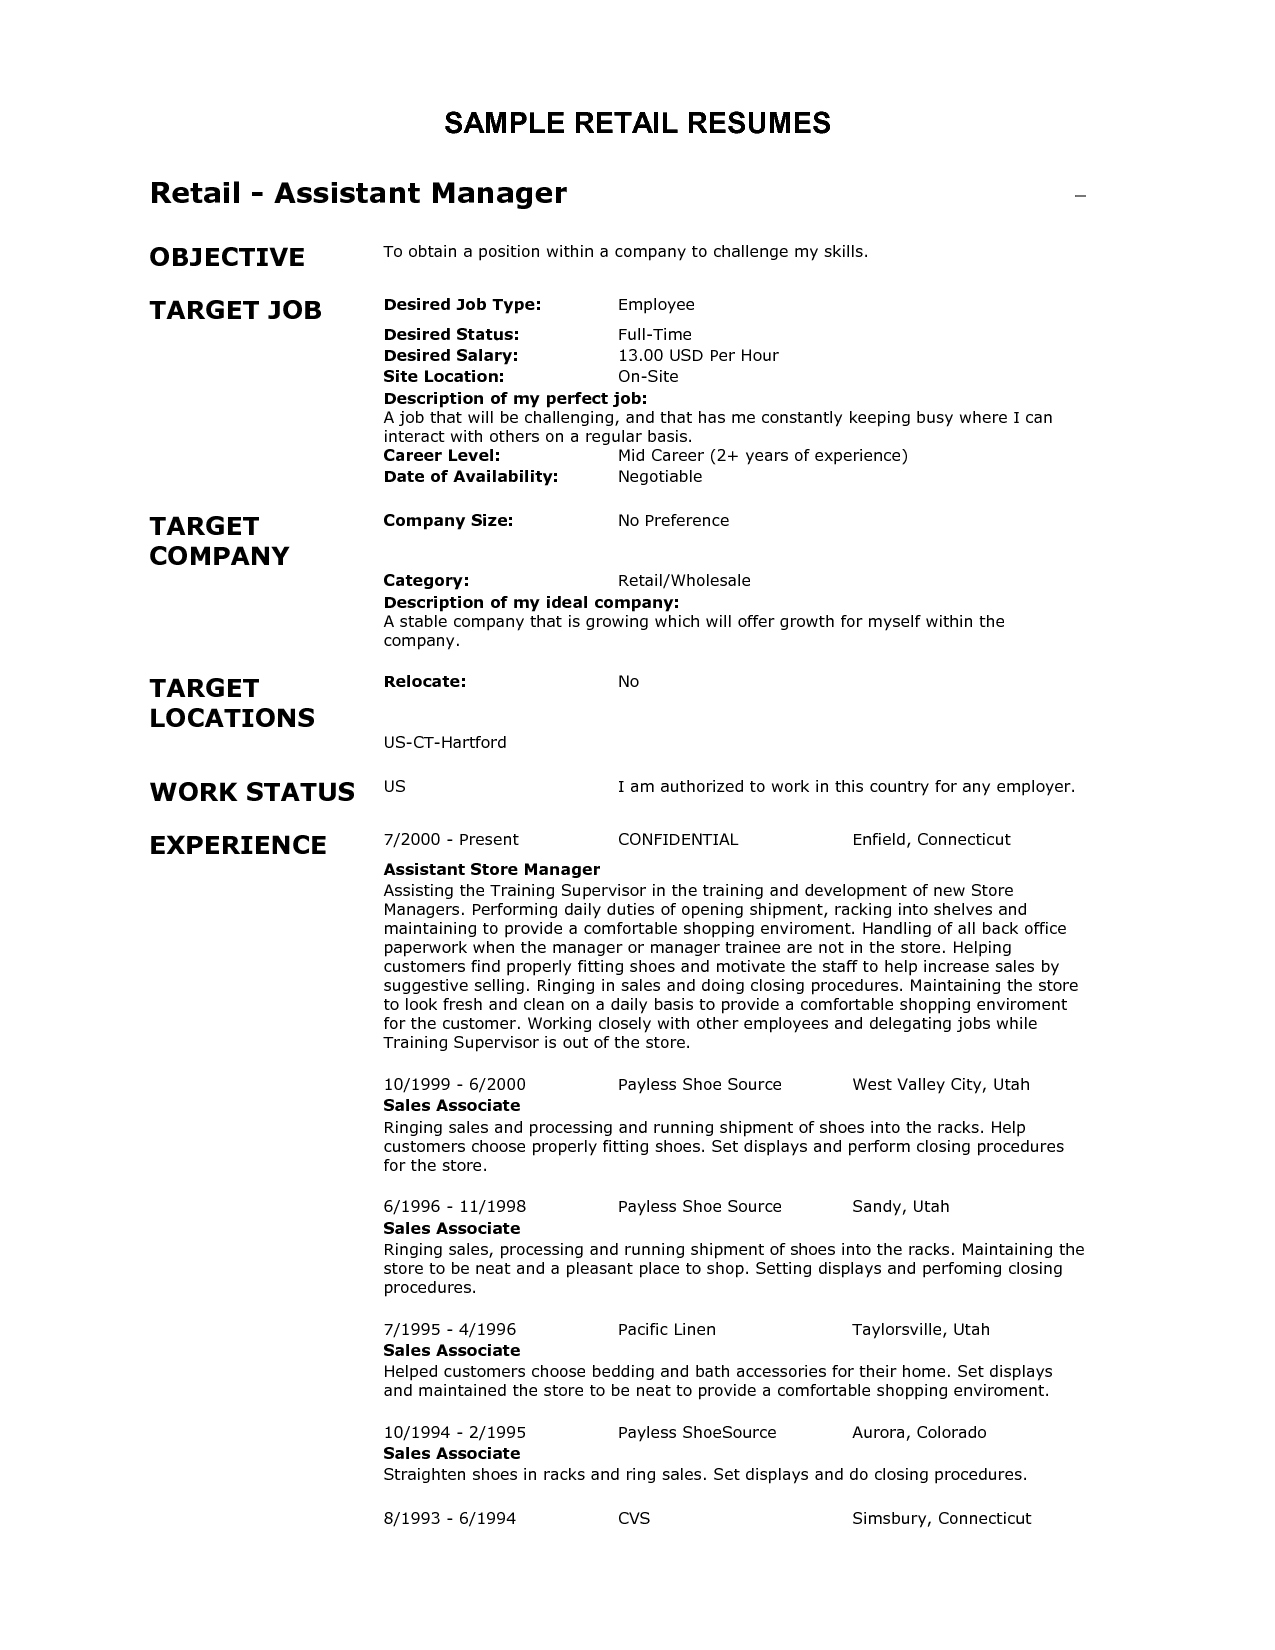 Top Ten Resume Format 10 Best Resume Objective Samples Samplebusinessresume